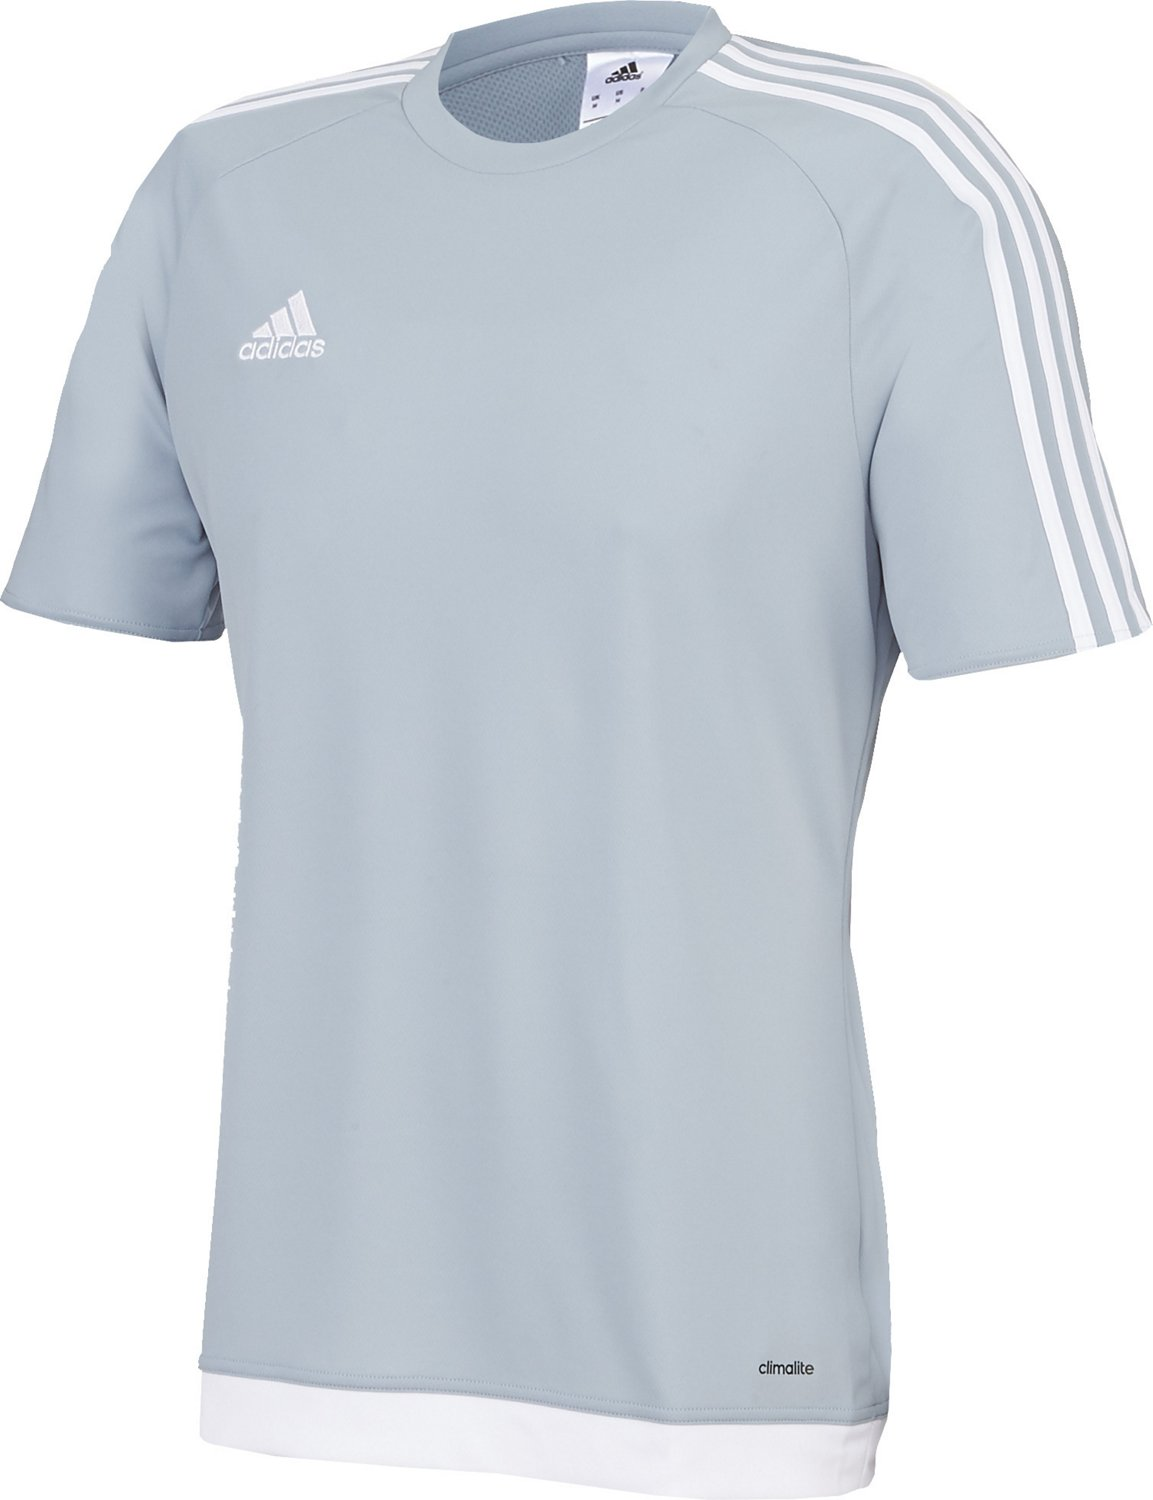 f5b90203e Display product reviews for adidas Men s Estro 15 Soccer Jersey